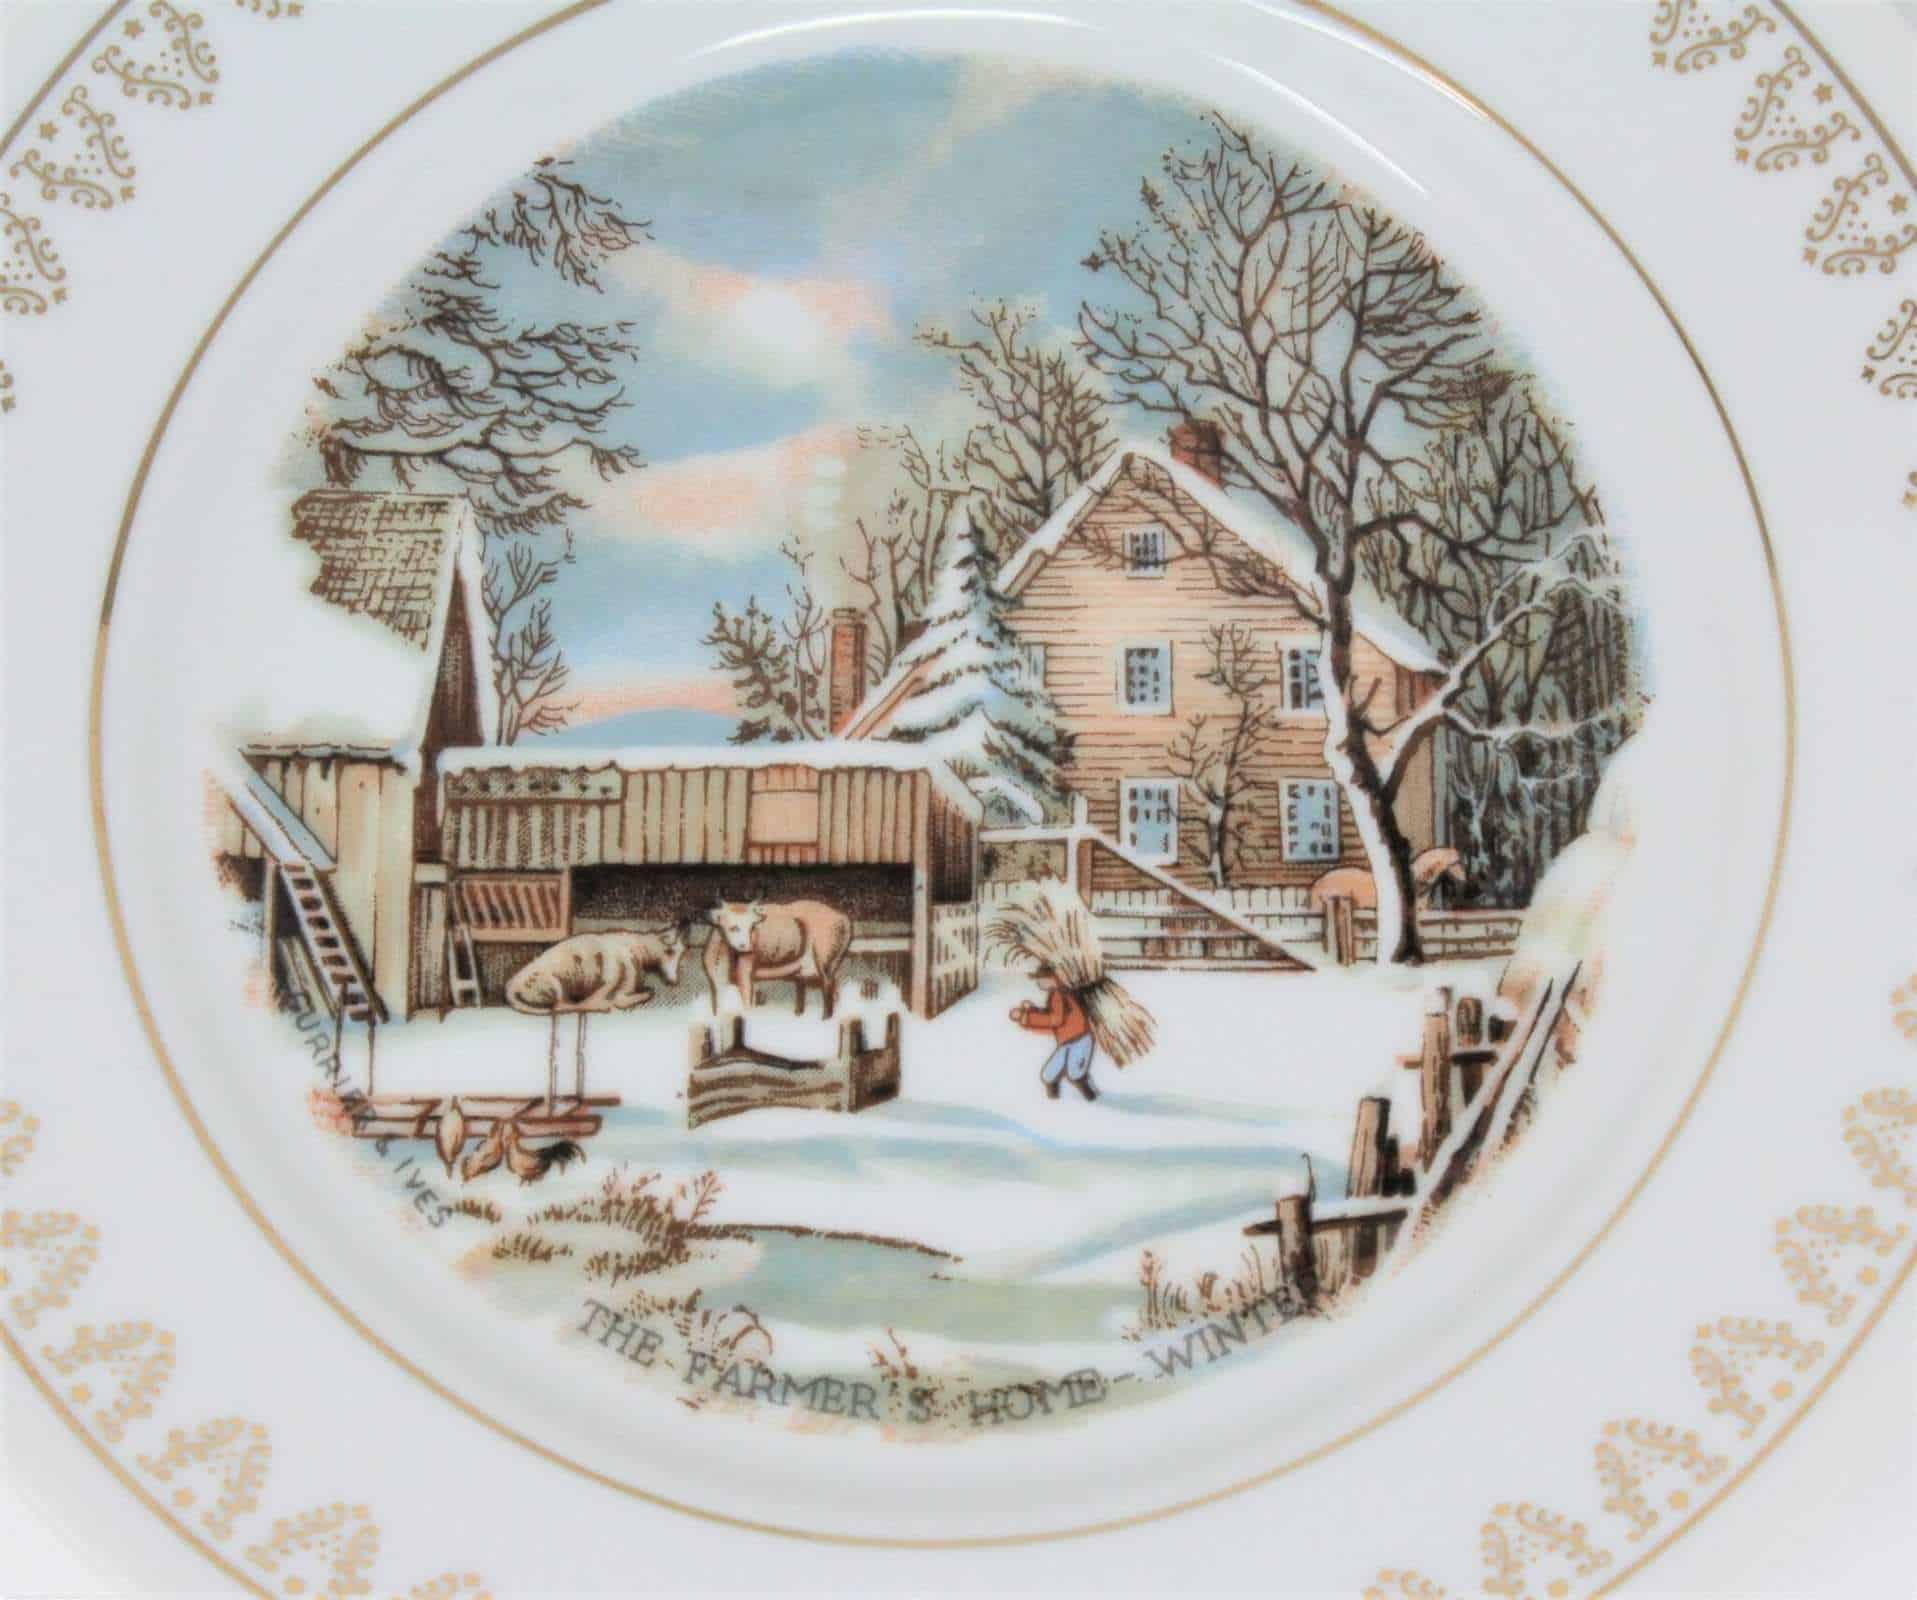 Decorative Plate The Farmer's Home In Winter, Currier & Ives Collection, Roy Thomas Limited Edition